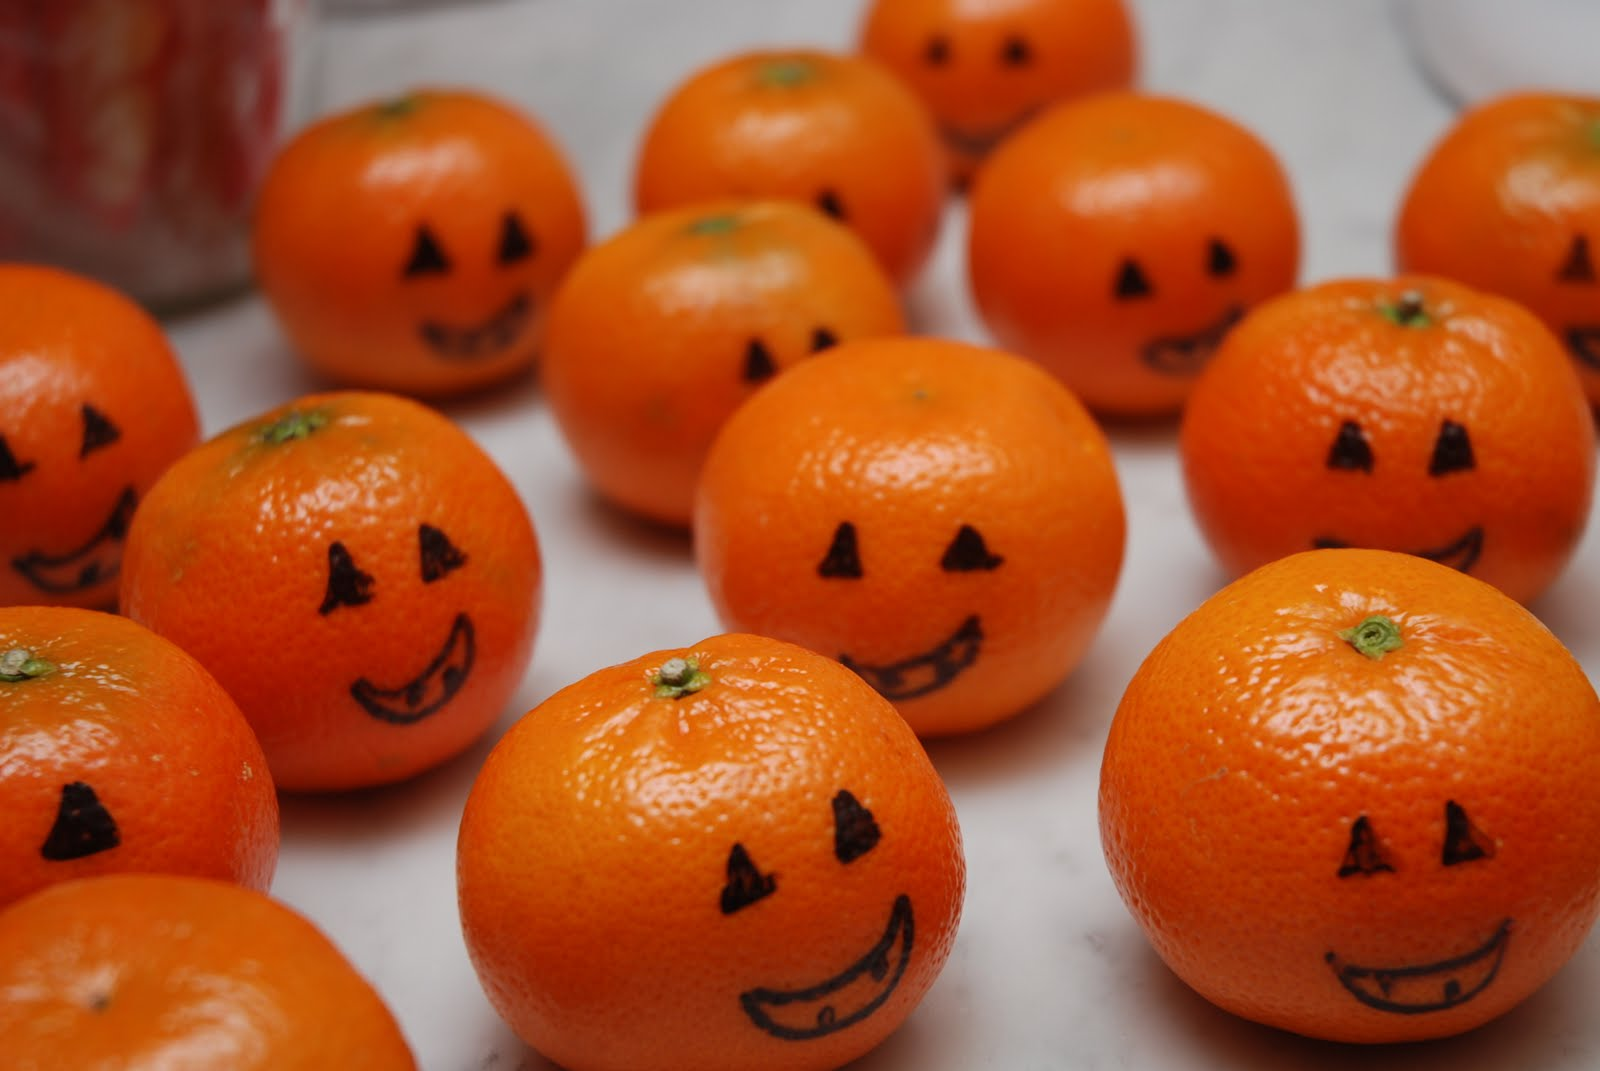 The princess and the frog blog clementine pumpkins - Calabazas de adorno ...